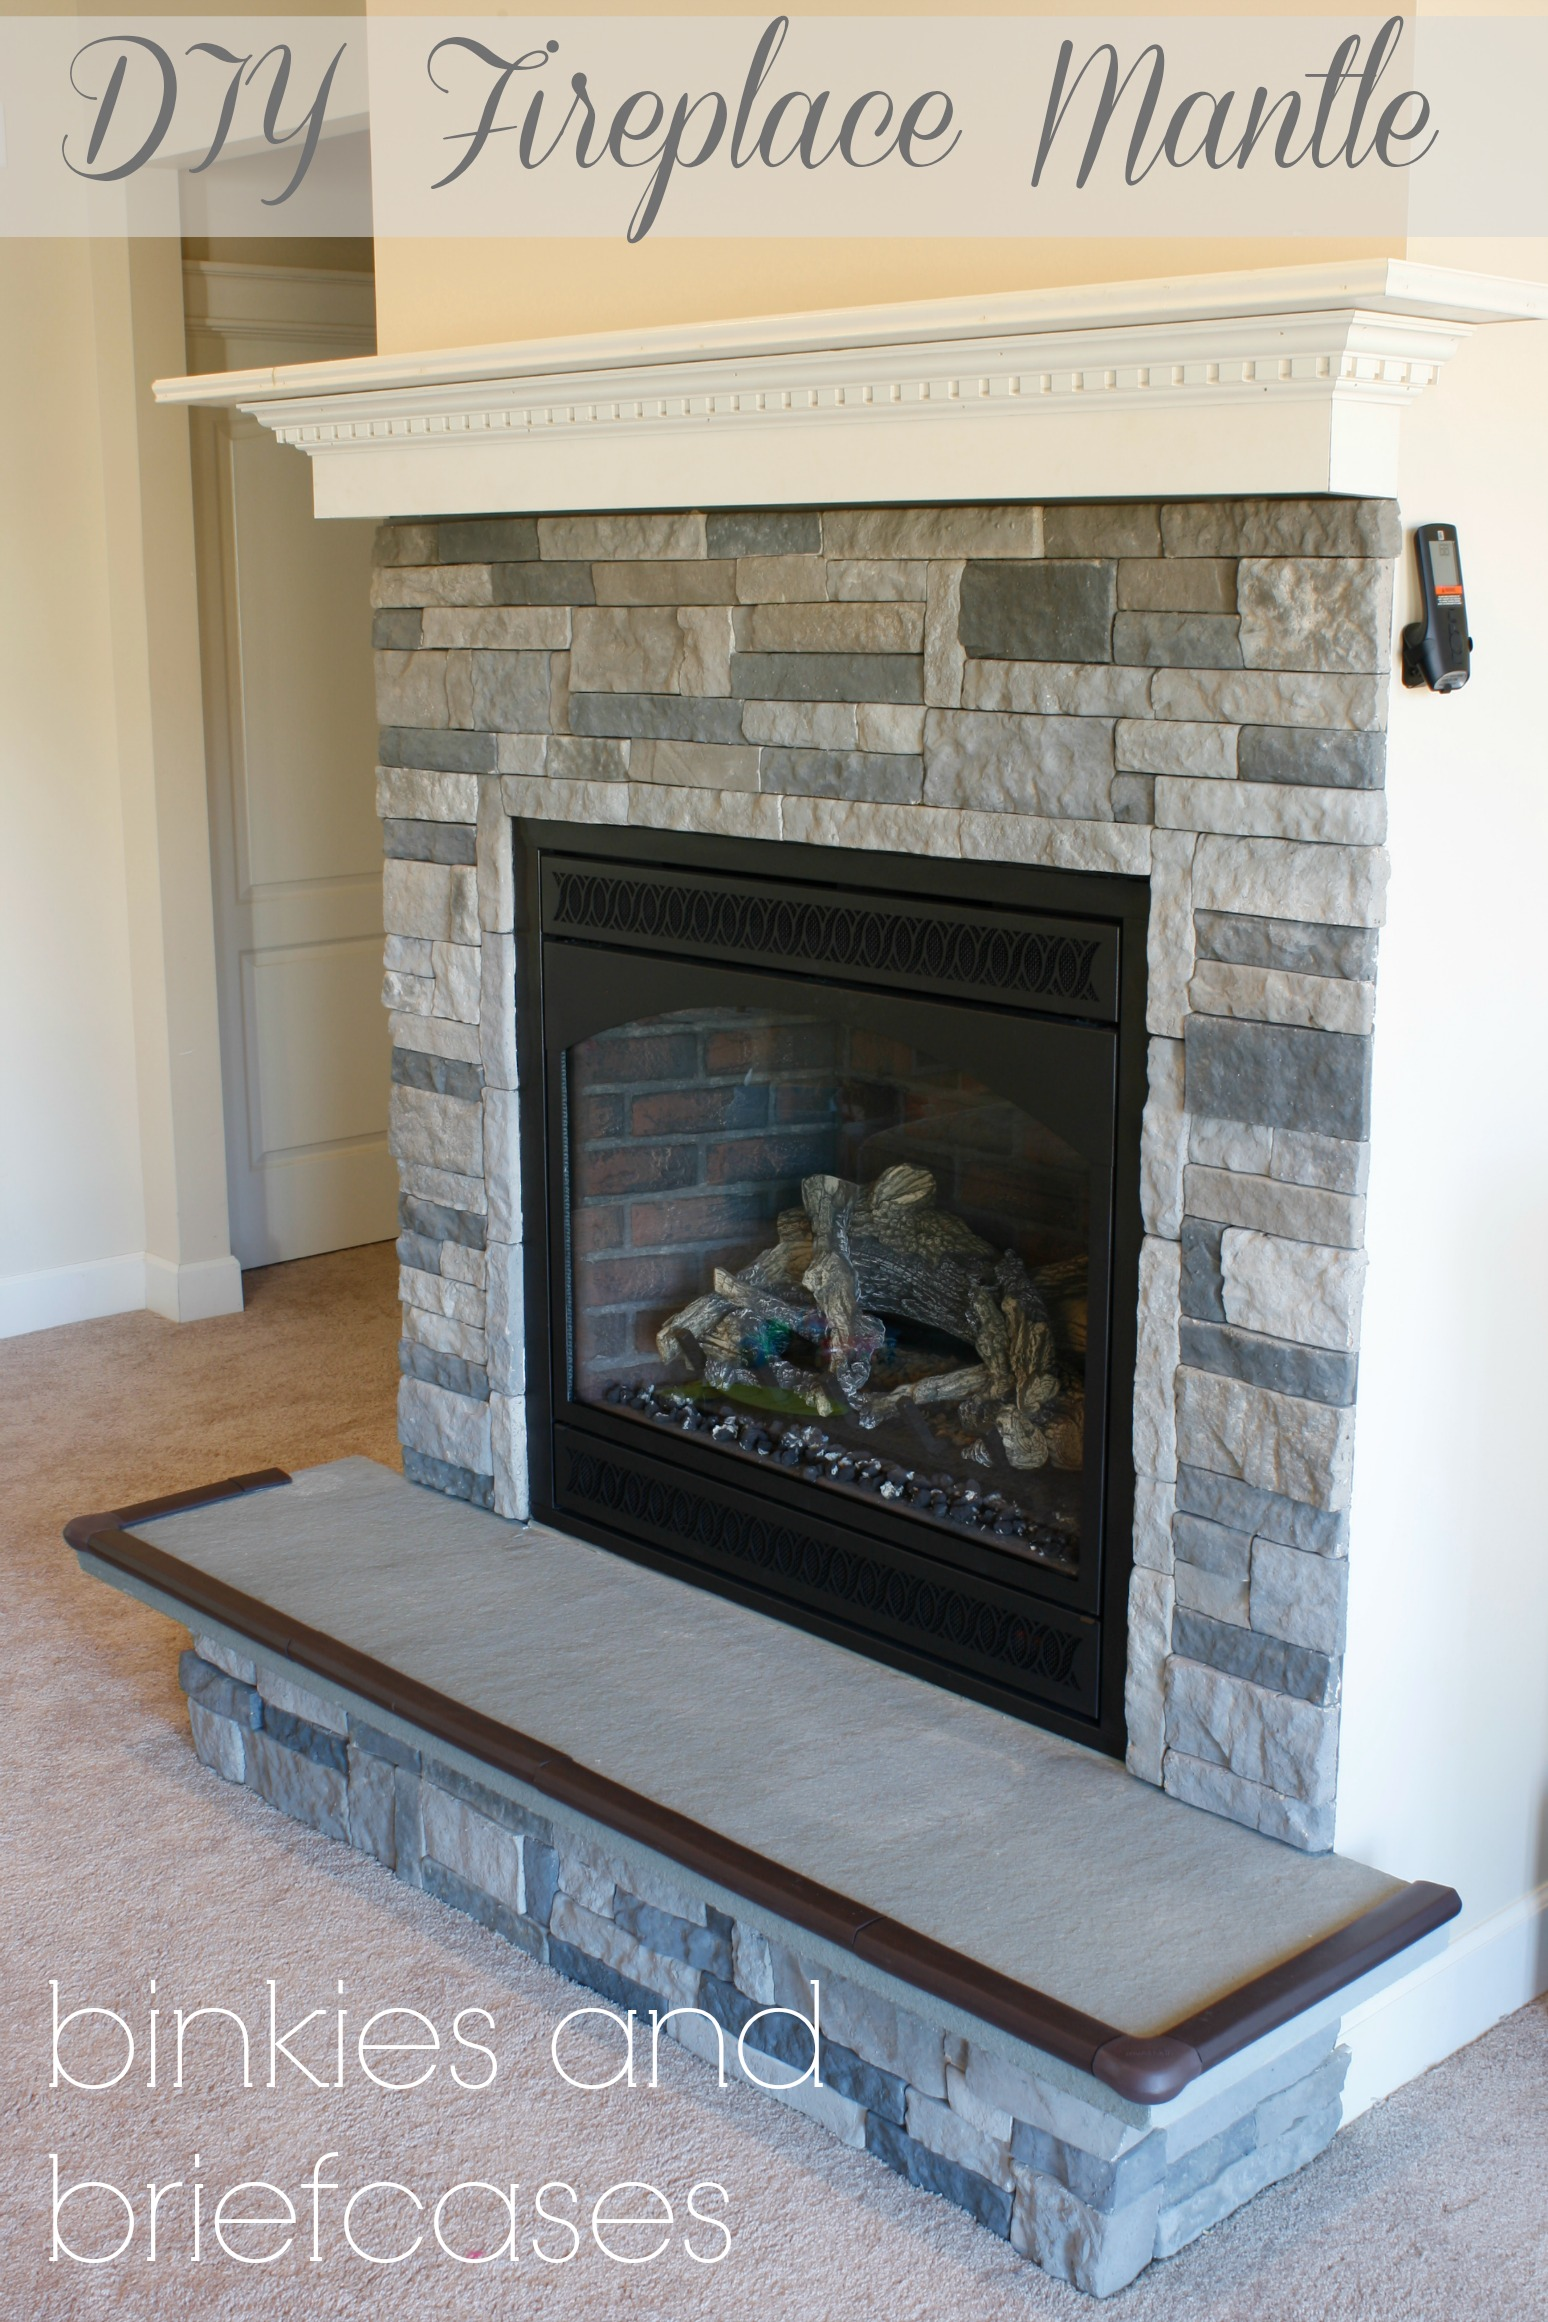 6 Ft Fireplace Mantel How To Build A Floating Fireplace Mantle Binkies And Briefcases